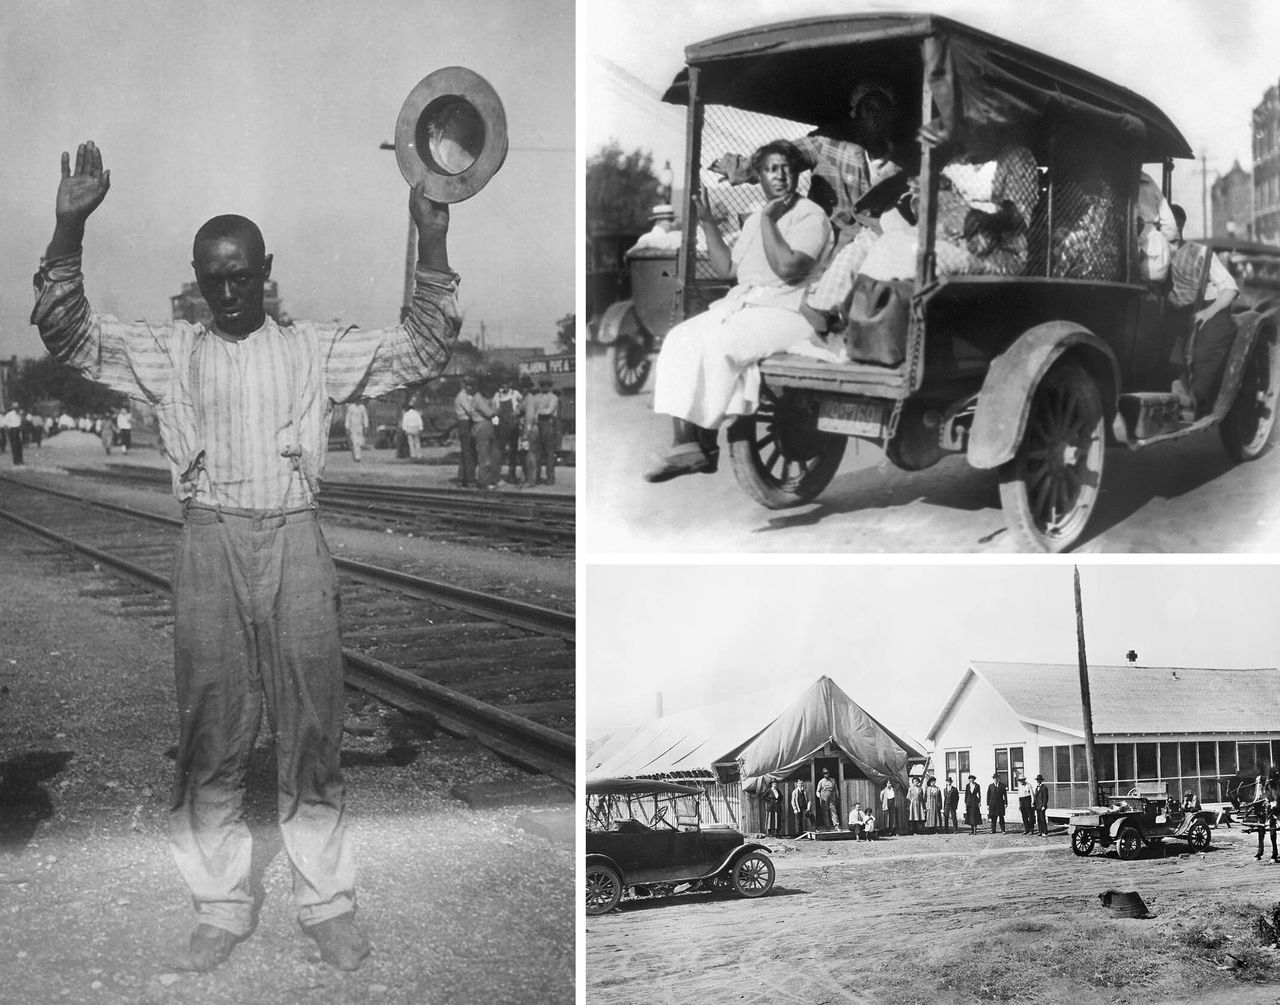 Left: A man with his hands up surrenders during the Tulsa race massacre. Top right: A truck carries African Americans during the massacre. Bottom right: The American Red Cross headquarters and hospital in Tulsa in November 1921. Credit: Getty Images.